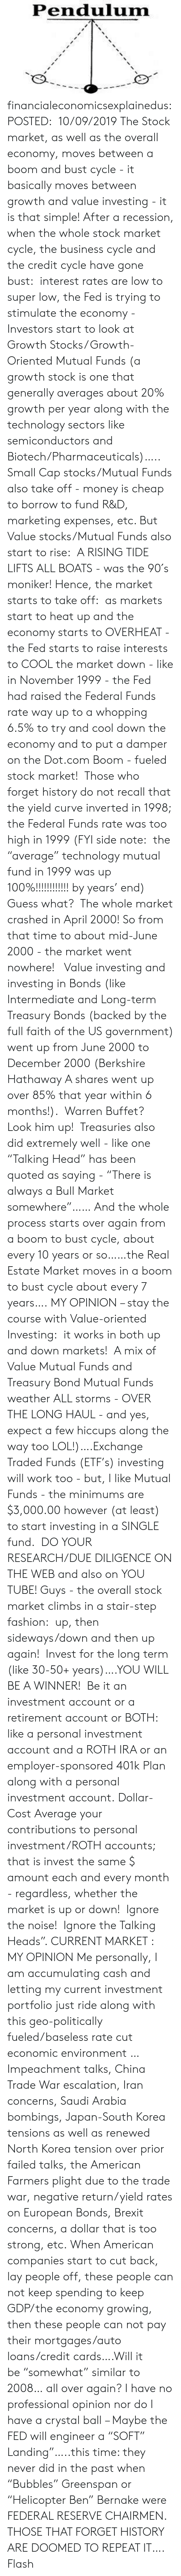 """Curving, Fashion, and Head: Pendulum financialeconomicsexplainedus: POSTED: 10/09/2019 The Stock market, as well as the overall economy, moves between a boom and bust cycle - it basically moves between growth and value investing - it is that simple! After a recession, when the whole stock market cycle, the business cycle and the credit cycle have gone bust: interest rates are low to super low, the Fed is trying to stimulate the economy - Investors start to look at Growth Stocks/ Growth-Oriented Mutual Funds (a growth stock is one that generally averages about 20% growth per year along with the technology sectors like semiconductors and Biotech/Pharmaceuticals)….. Small Cap stocks/Mutual Funds also take off - money is cheap to borrow to fund R&D, marketing expenses, etc.  But Value stocks/Mutual Funds also start to rise: A RISING TIDE LIFTS ALL BOATS - was the 90′s moniker! Hence, the market starts to take off: as markets start to heat up and the economy starts to OVERHEAT - the Fed starts to raise interests to COOL the market down - like in November 1999 - the Fed had raised the Federal Funds rate way up to a whopping 6.5% to try and cool down the economy and to put a damper on the Dot.com Boom - fueled stock market!  Those who forget history do not recall that the yield curve inverted in 1998; the Federal Funds rate was too high in 1999 (FYI side note: the """"average"""" technology mutual fund in 1999 was up 100%!!!!!!!!!!!! by years' end) Guess what? The whole market crashed in April 2000! So from that time to about mid-June 2000 - the market went nowhere! Value investing and investing in Bonds (like Intermediate and Long-term Treasury Bonds (backed by the full faith of the US government) went up from June 2000 to December 2000 (Berkshire Hathaway A shares went up over 85% that year within 6 months!). Warren Buffet? Look him up! Treasuries also did extremely well - like one """"Talking Head"""" has been quoted as saying - """"There is always a Bull Market somewhere""""…… And the w"""